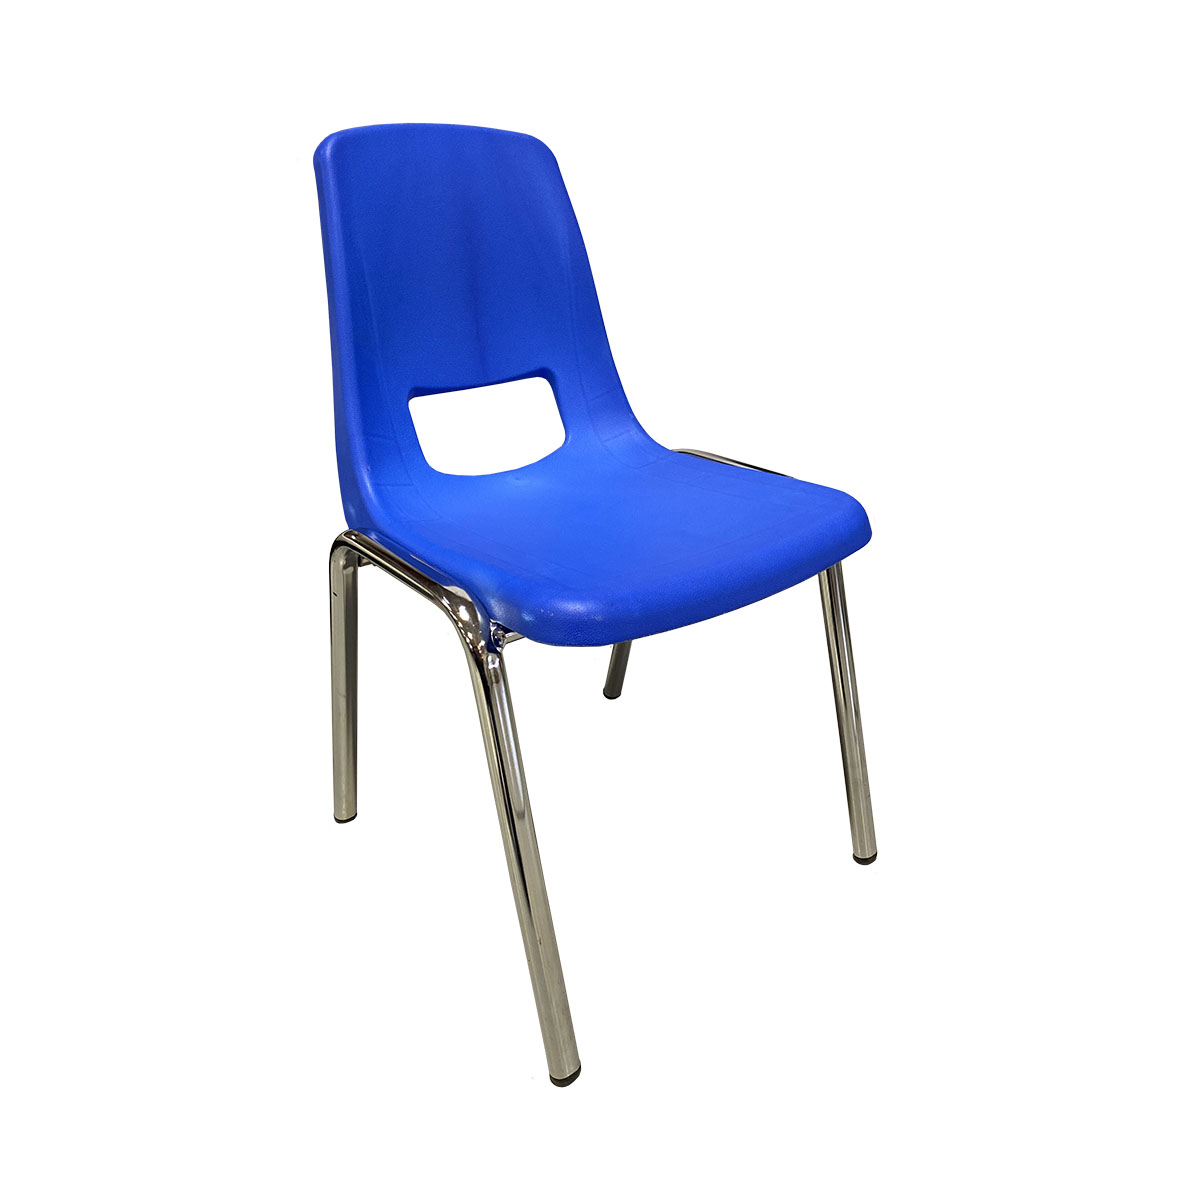 Chair Blue Seat Chrome Leg Child Size 14